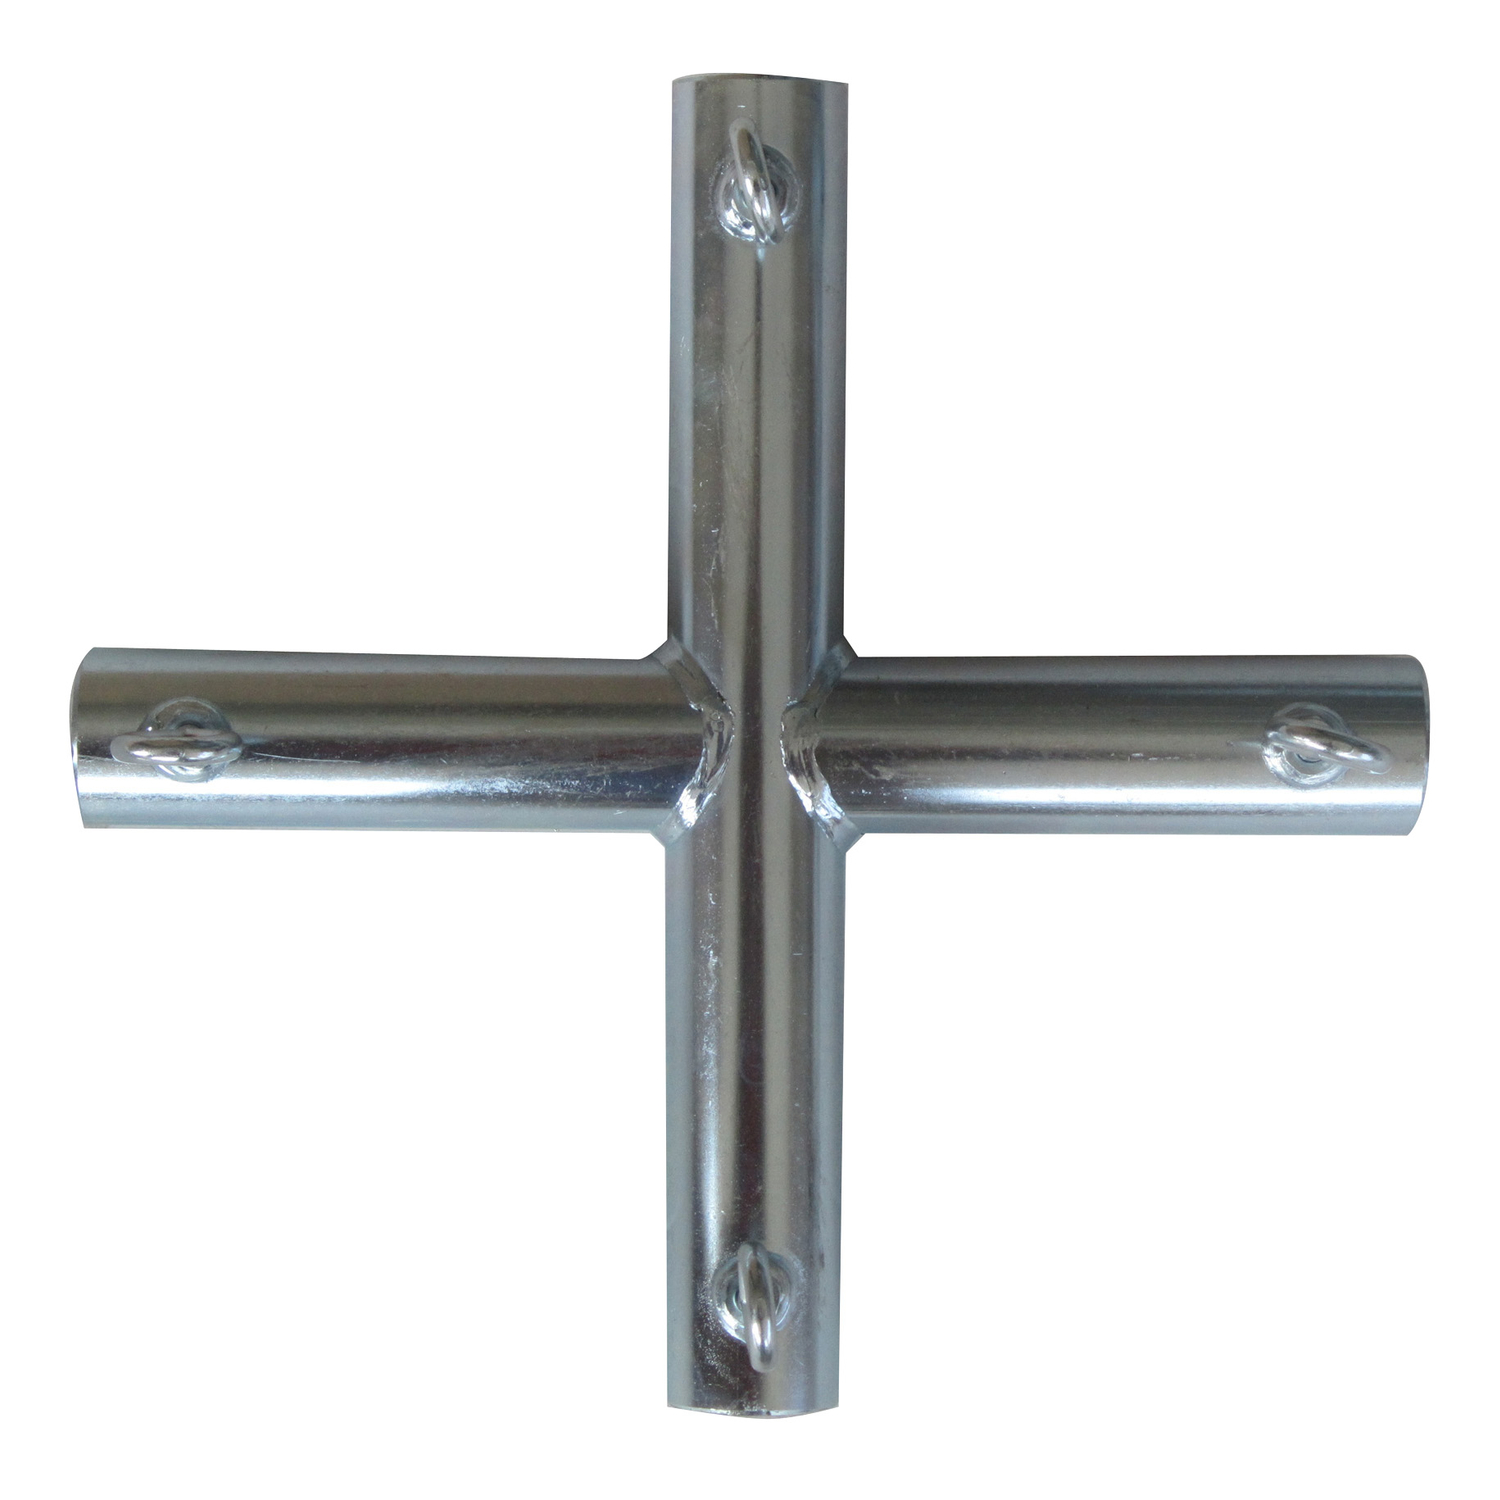 AHC  1 in. Round   x 1 in. Dia. x 10 in. L Galvanized  Carbon Steel  Connector